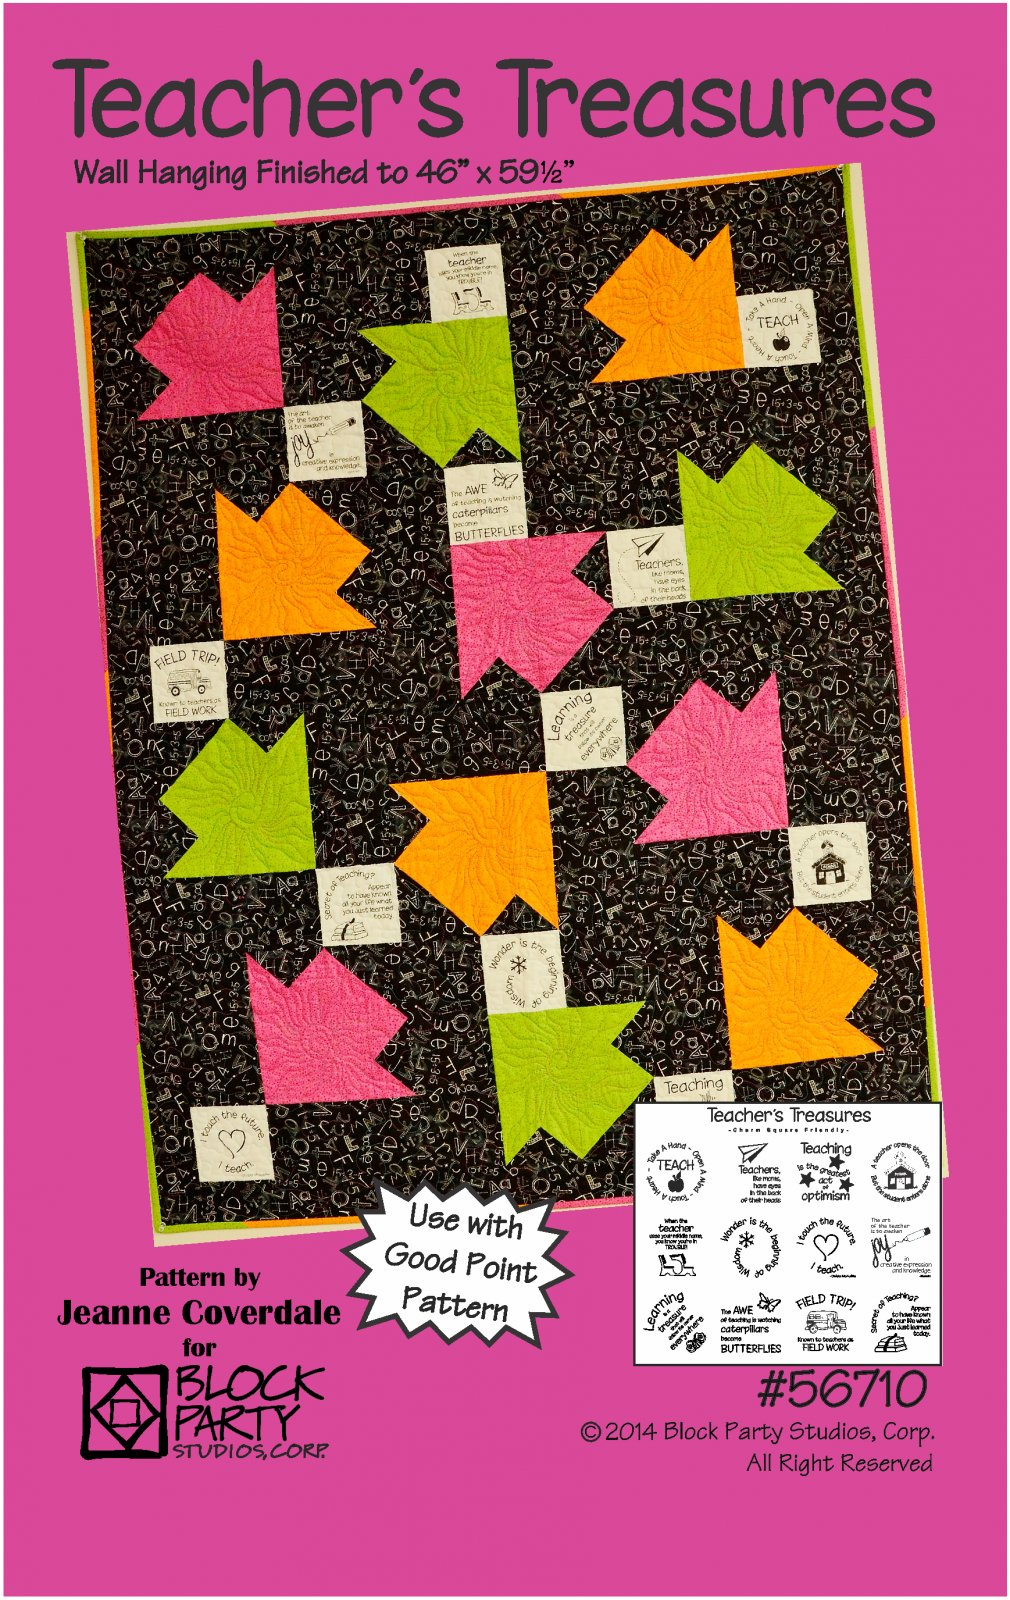 Teacher's Treasures Fabric Panel & Pattern